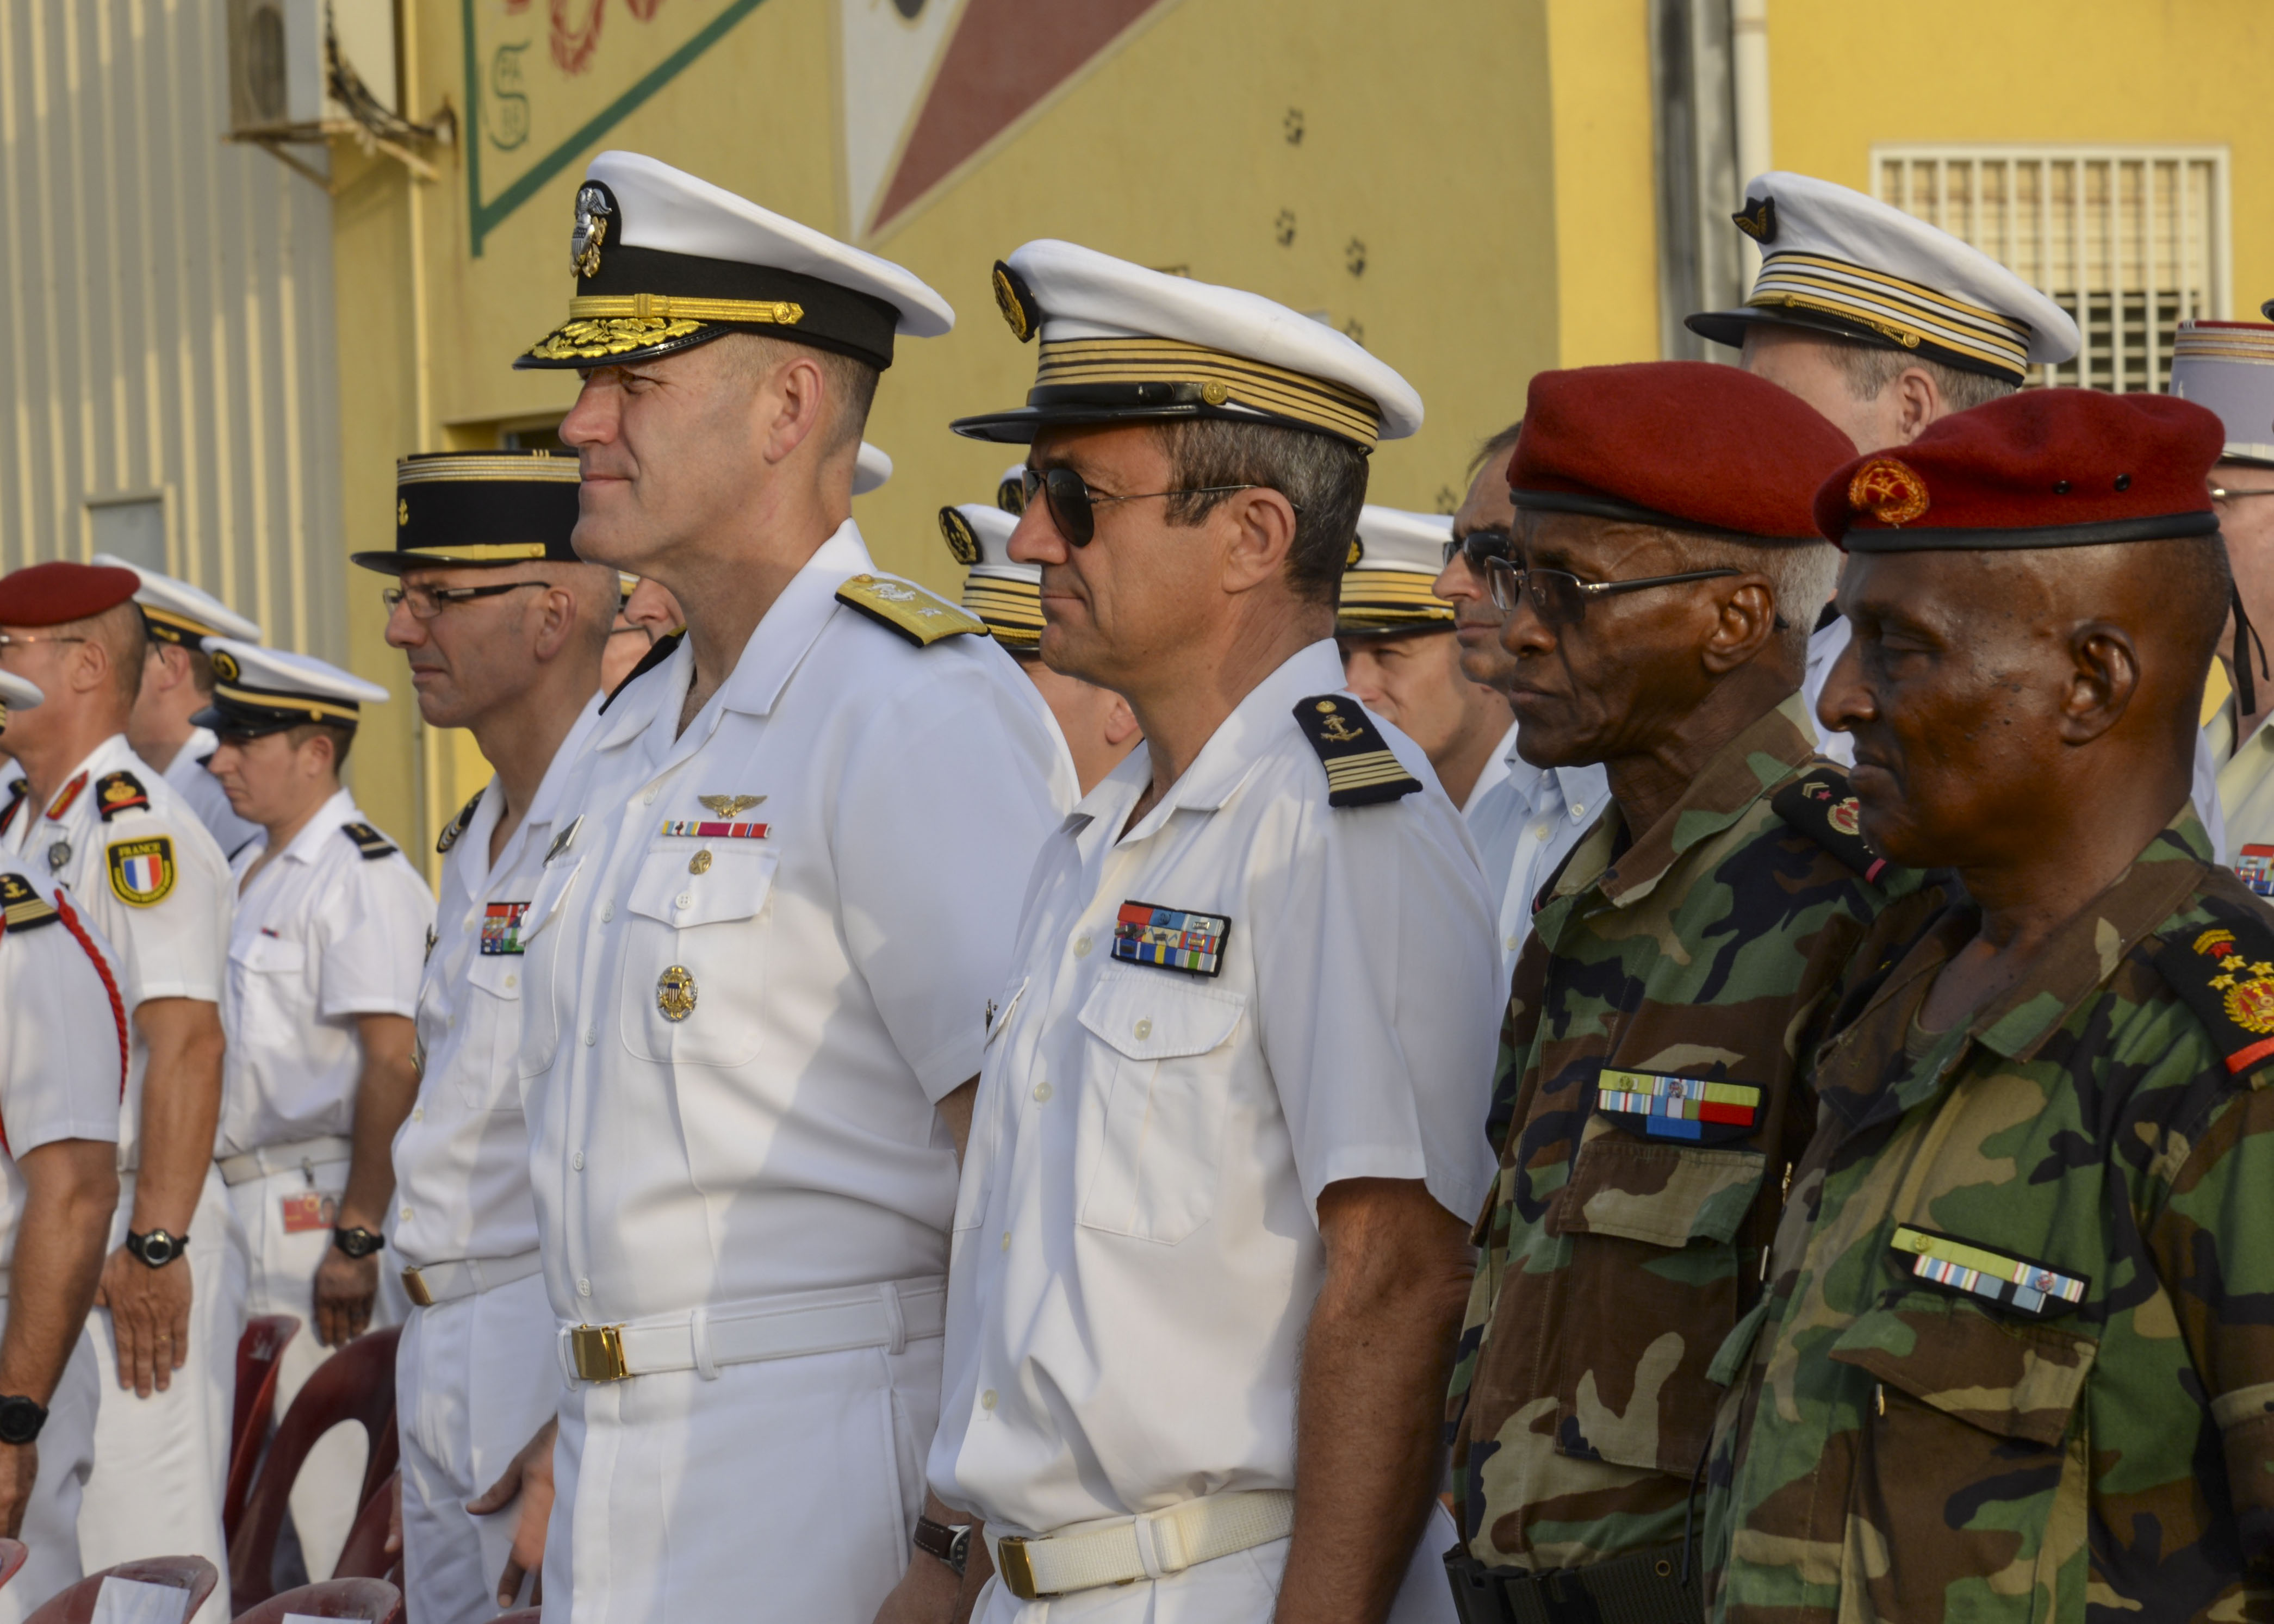 U.S. Navy Rear Adm. William W. Wheeler, Combined Joint Task Force-Horn of Africa vice commander, left, watches a French military parade in commemoration of Bastille Day (also commonly referred to as French National Day) at the French base in Djibouti, July 14, 2016. The Honorable Tom Kelly, U.S. Ambassador to Djibouti, as well as military members from Italy, Japan and others attended the ceremony. (U.S. Air Force photo by Staff Sgt. Benjamin Raughton/Released)